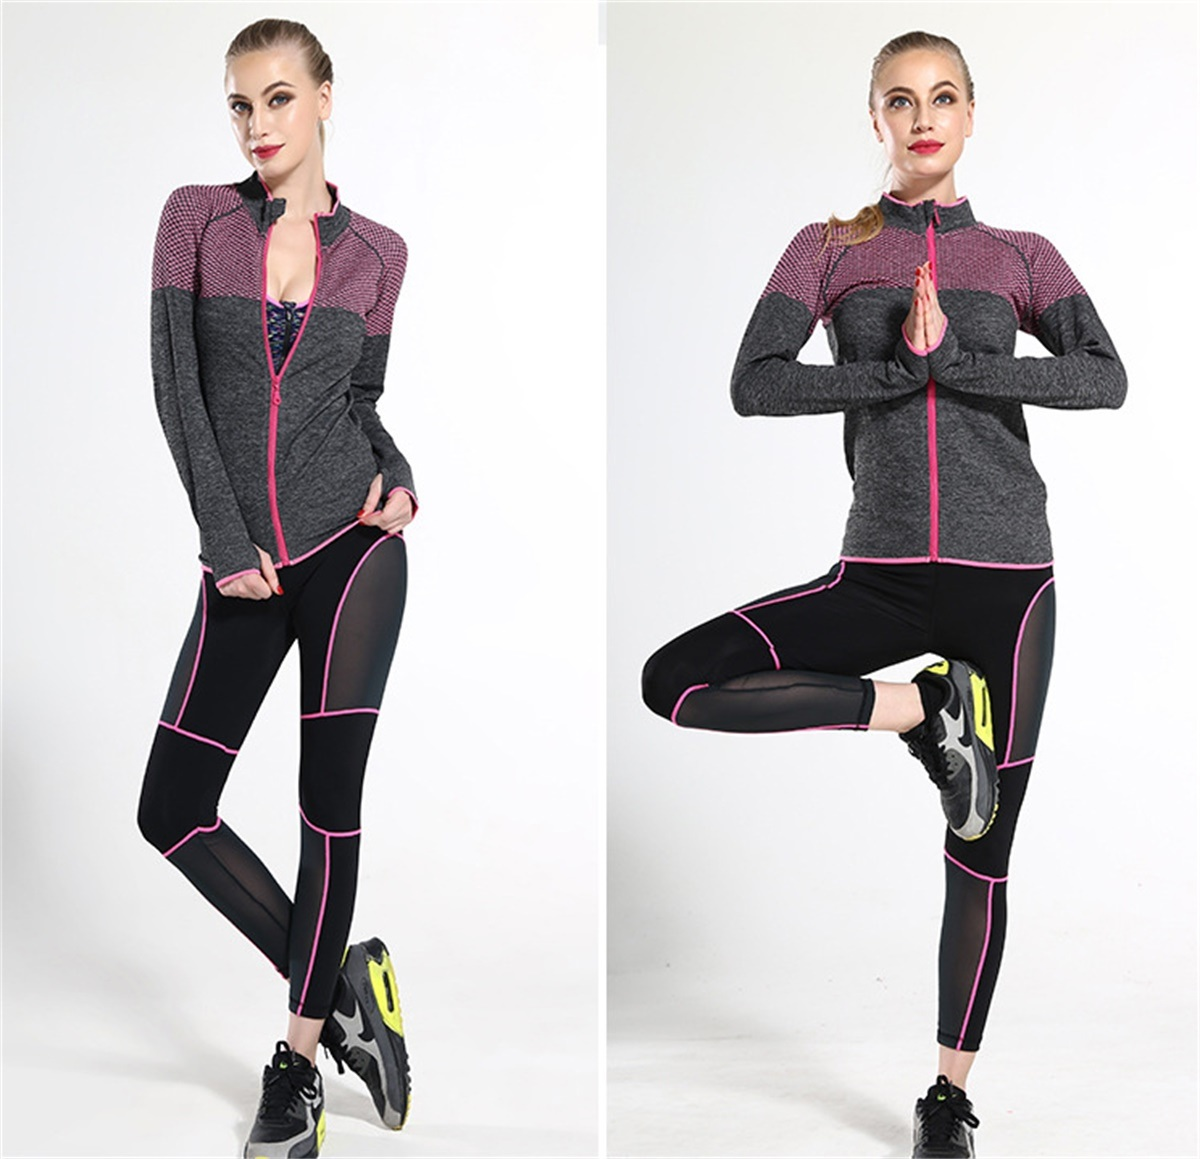 2017 Netting Yoga Sports Pants for Women Running Pants